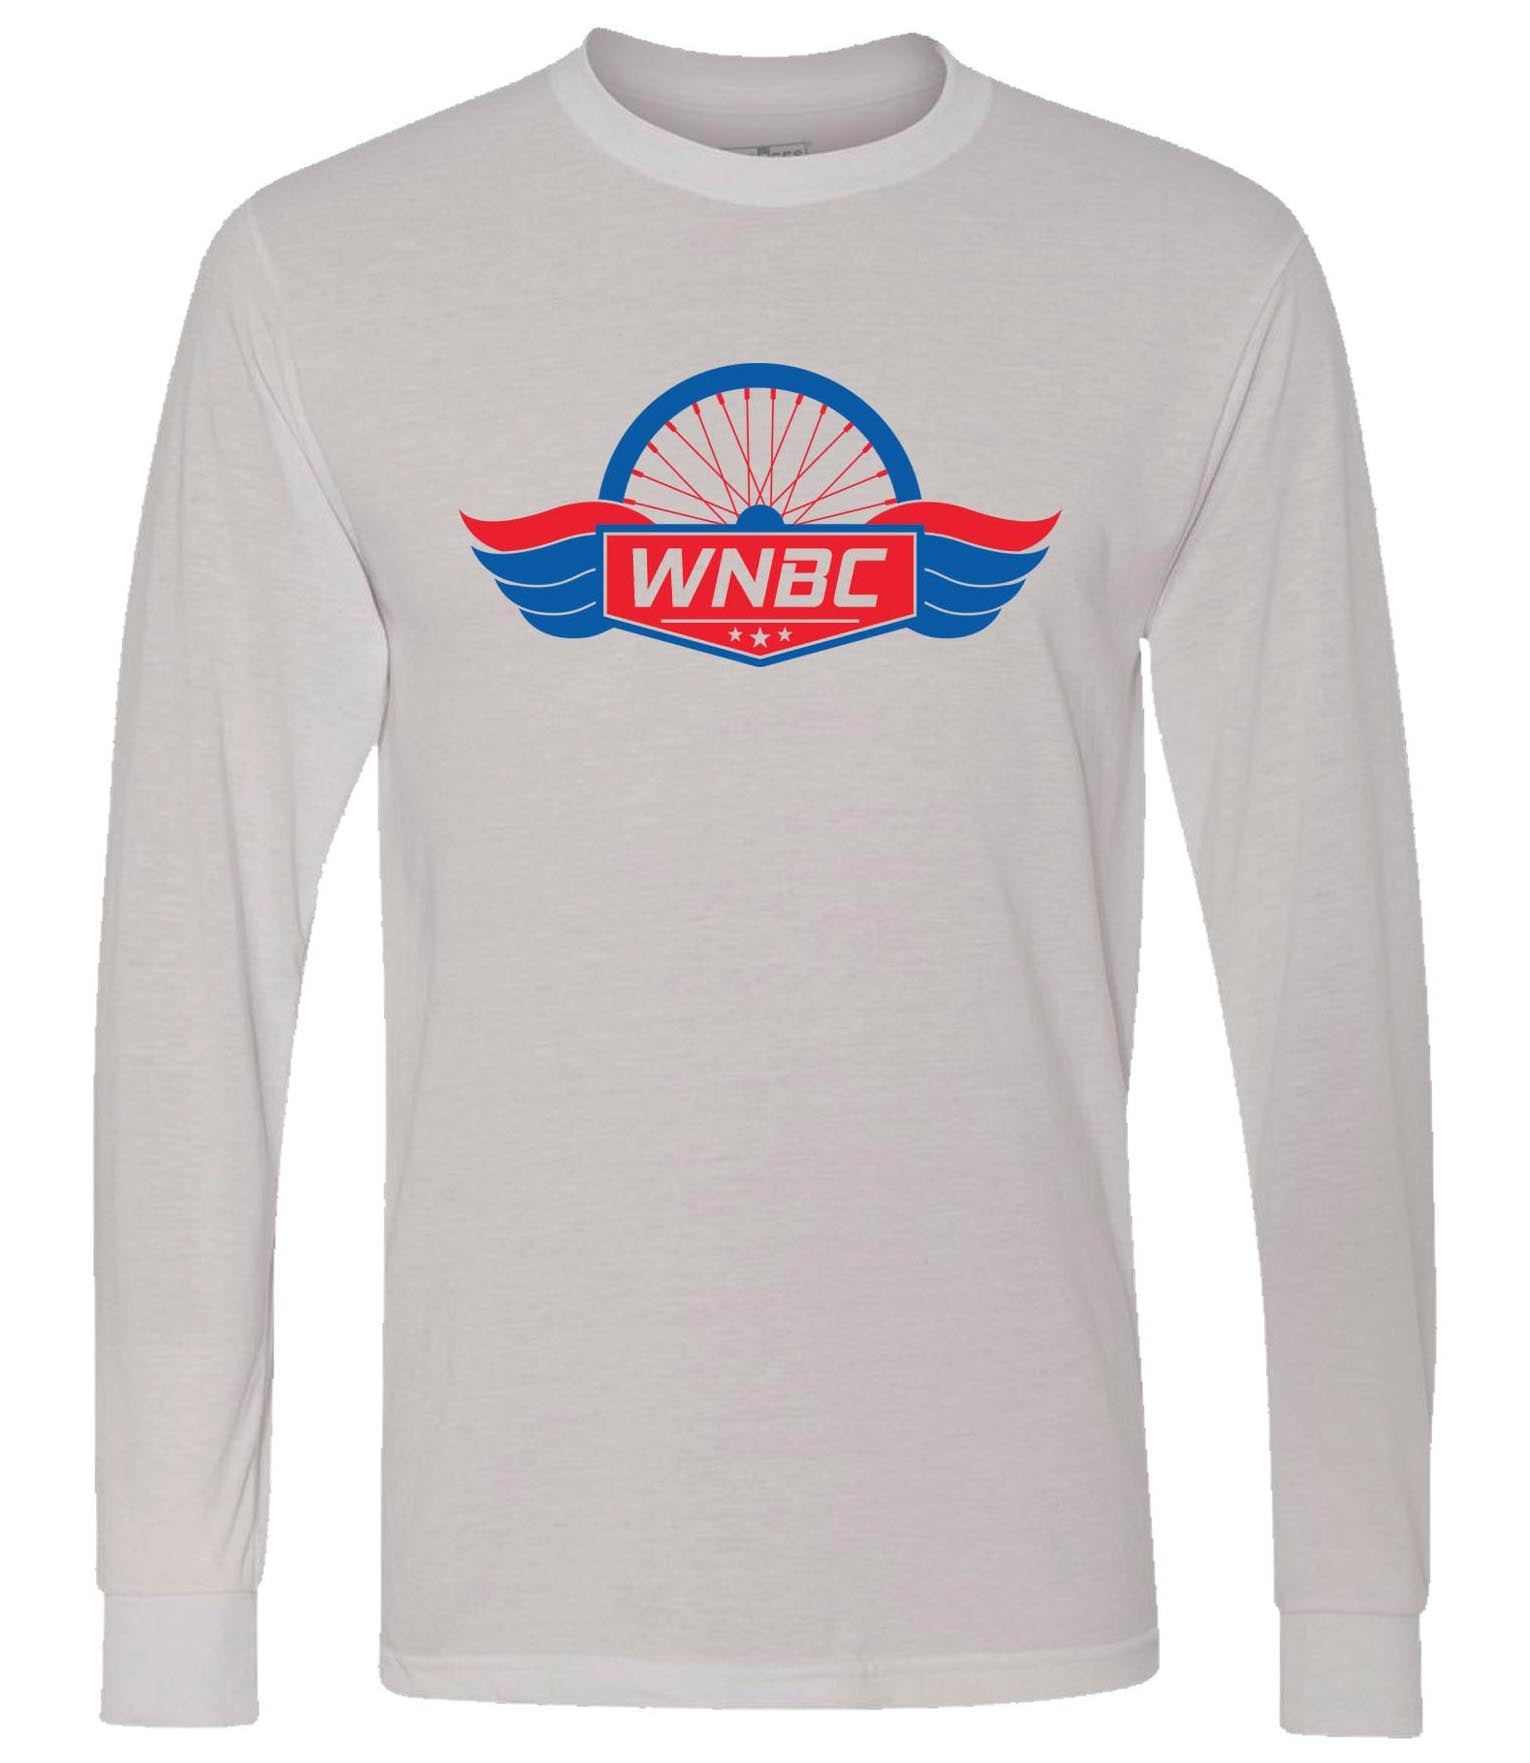 WNBC - Long Sleeve T-Shirt - Silver